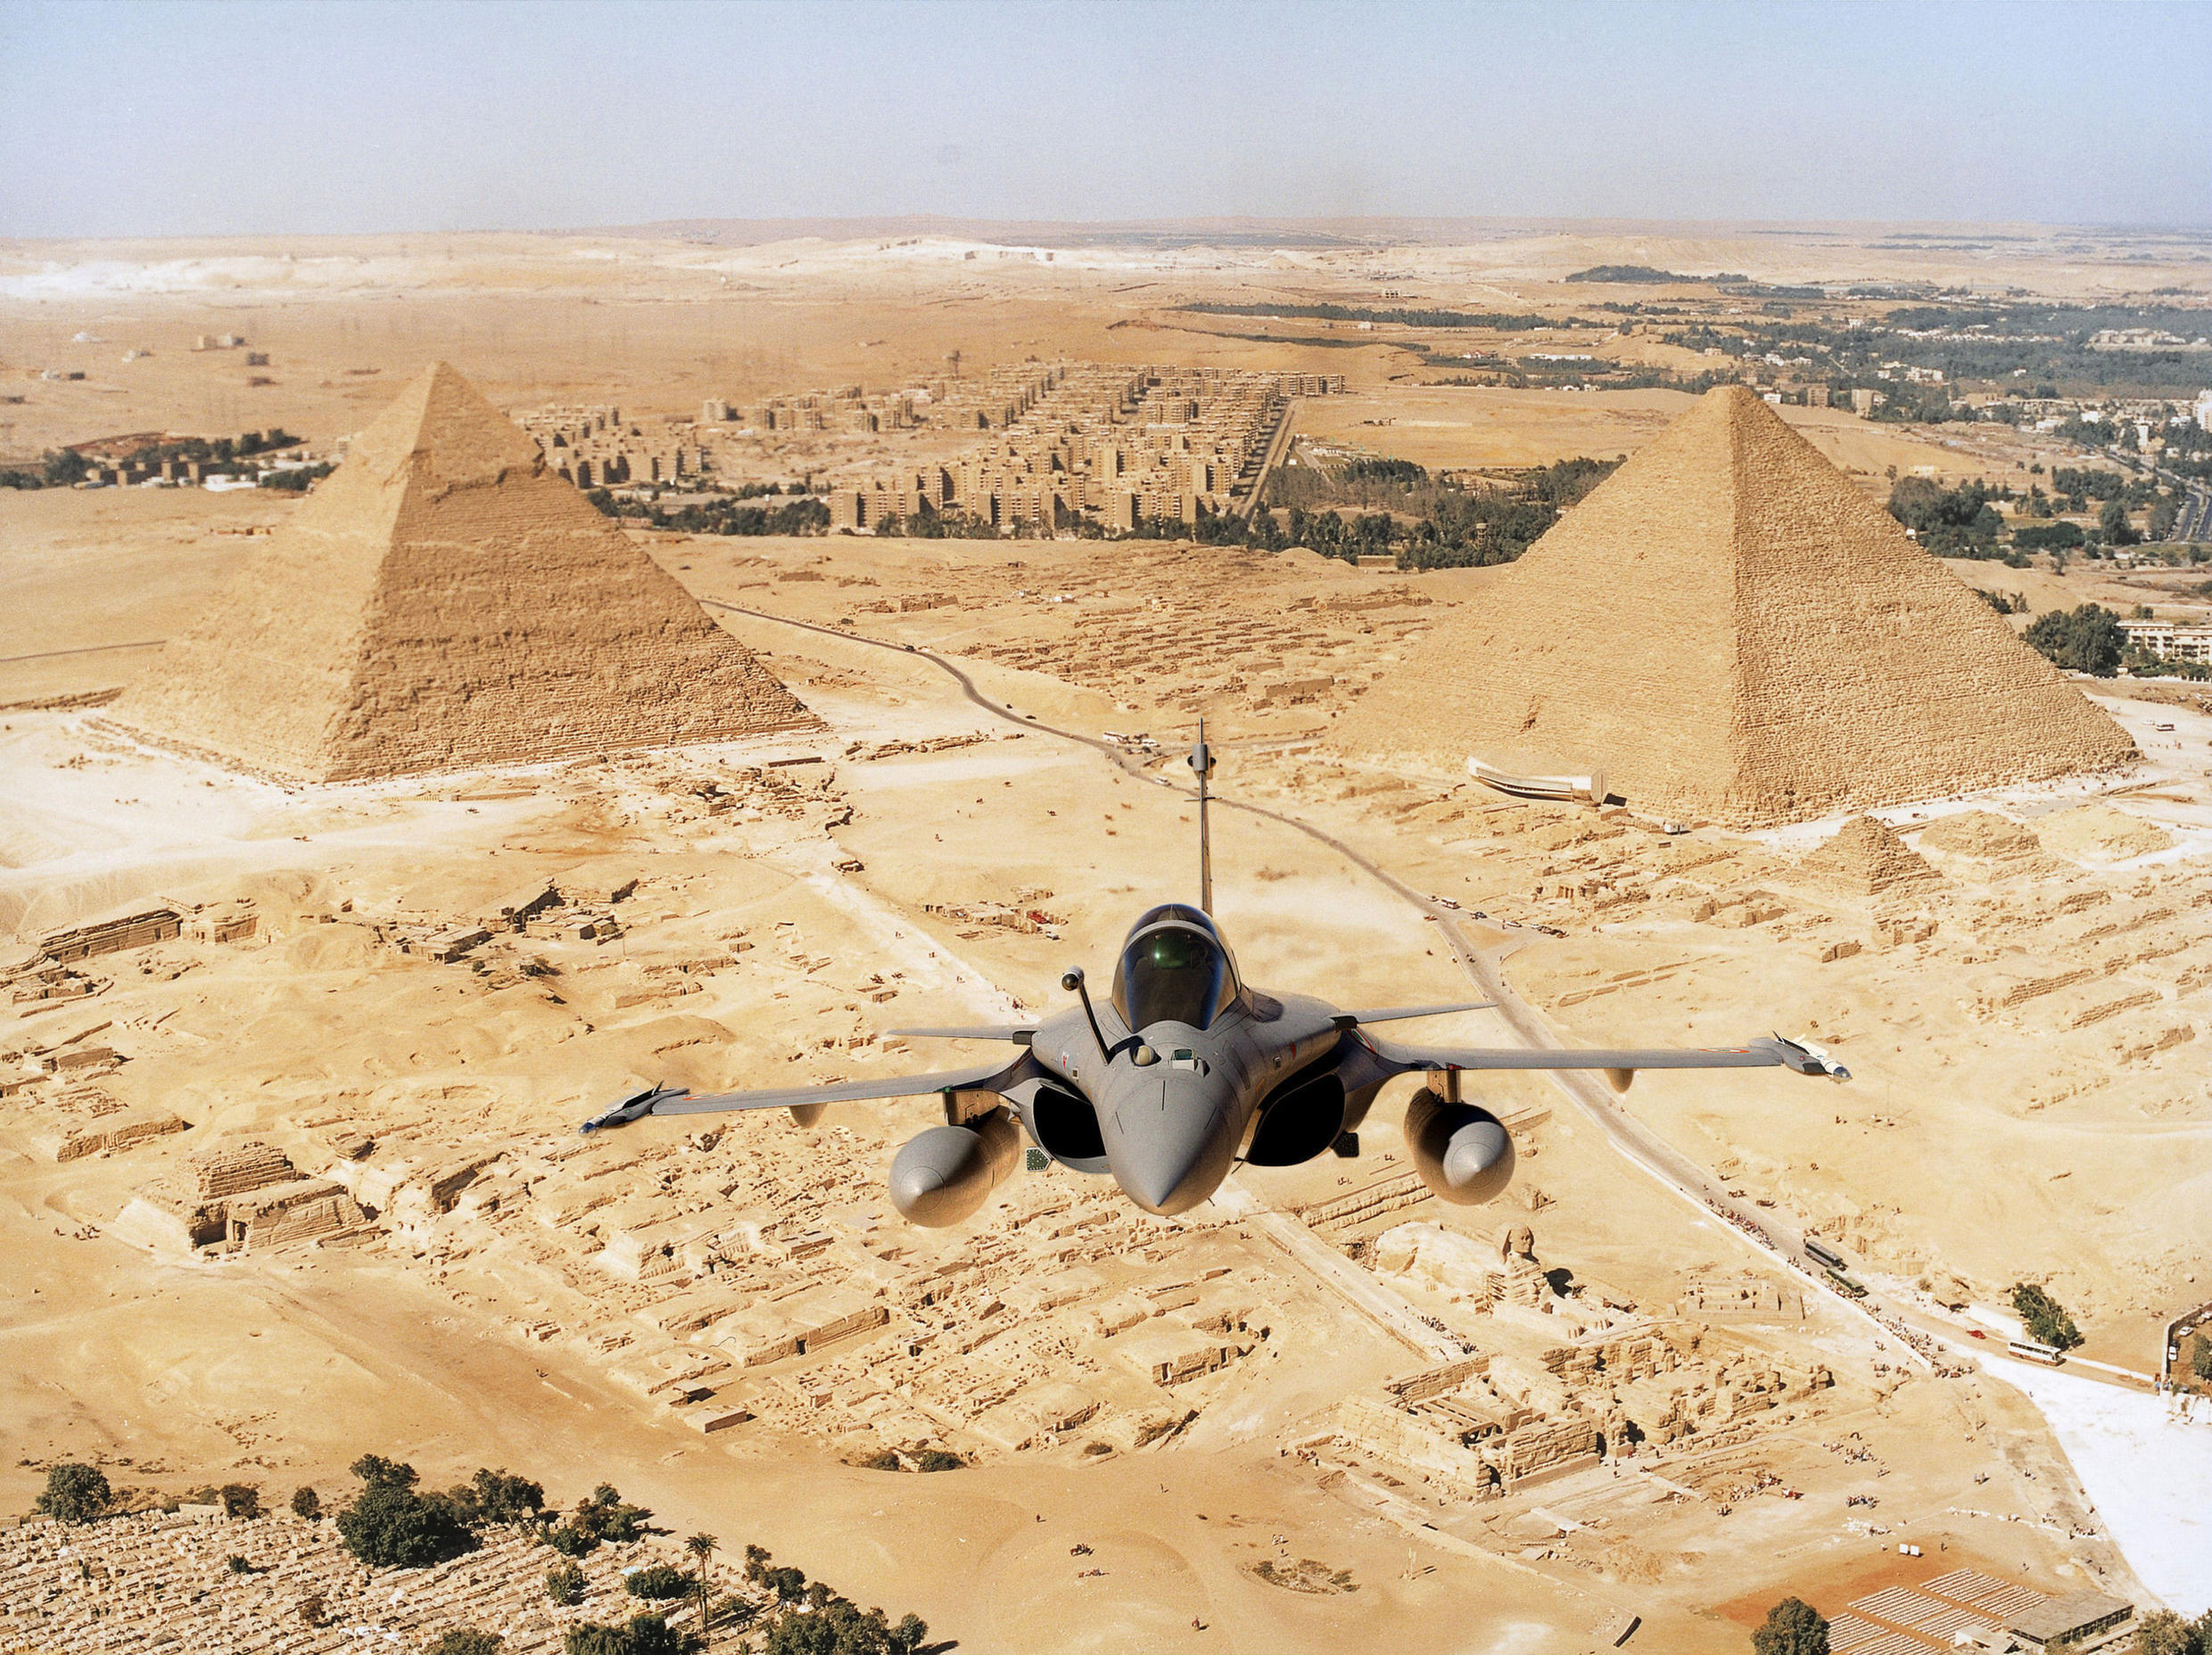 A Rafale flying over Egypt's pyramids.